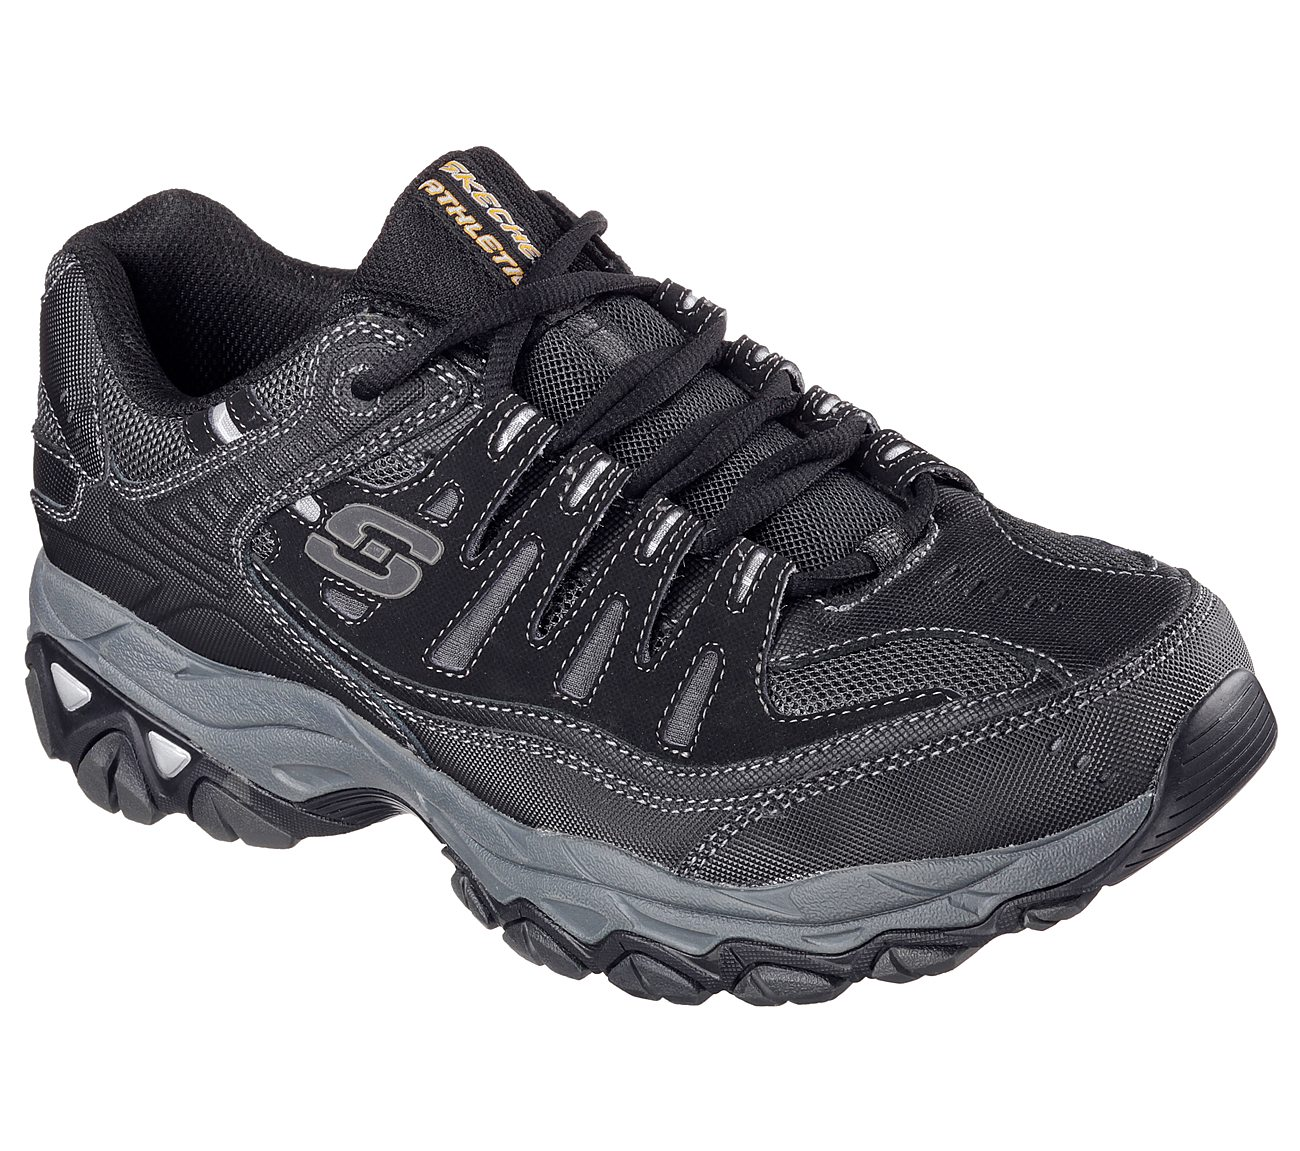 Wide Skechers Golf Shoes